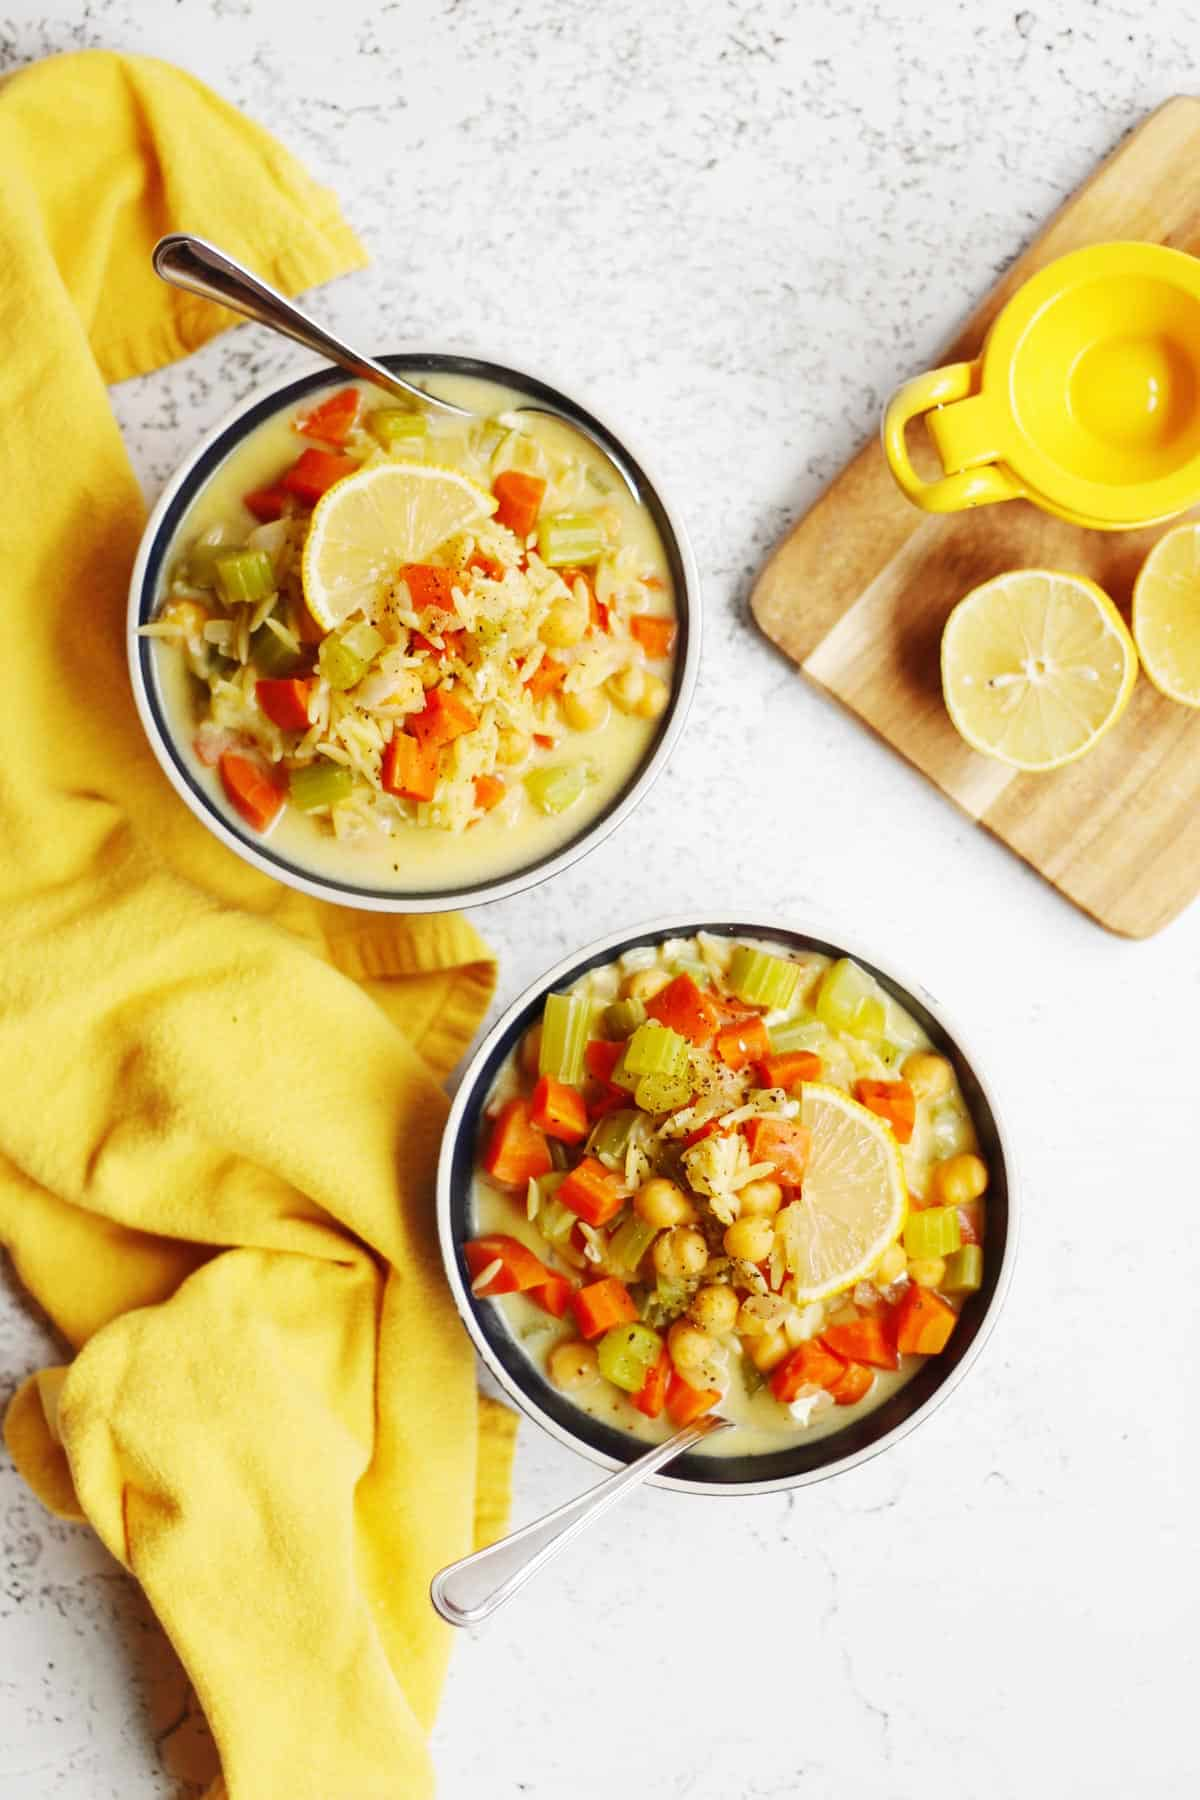 Two bowls of lemon chickpea soup